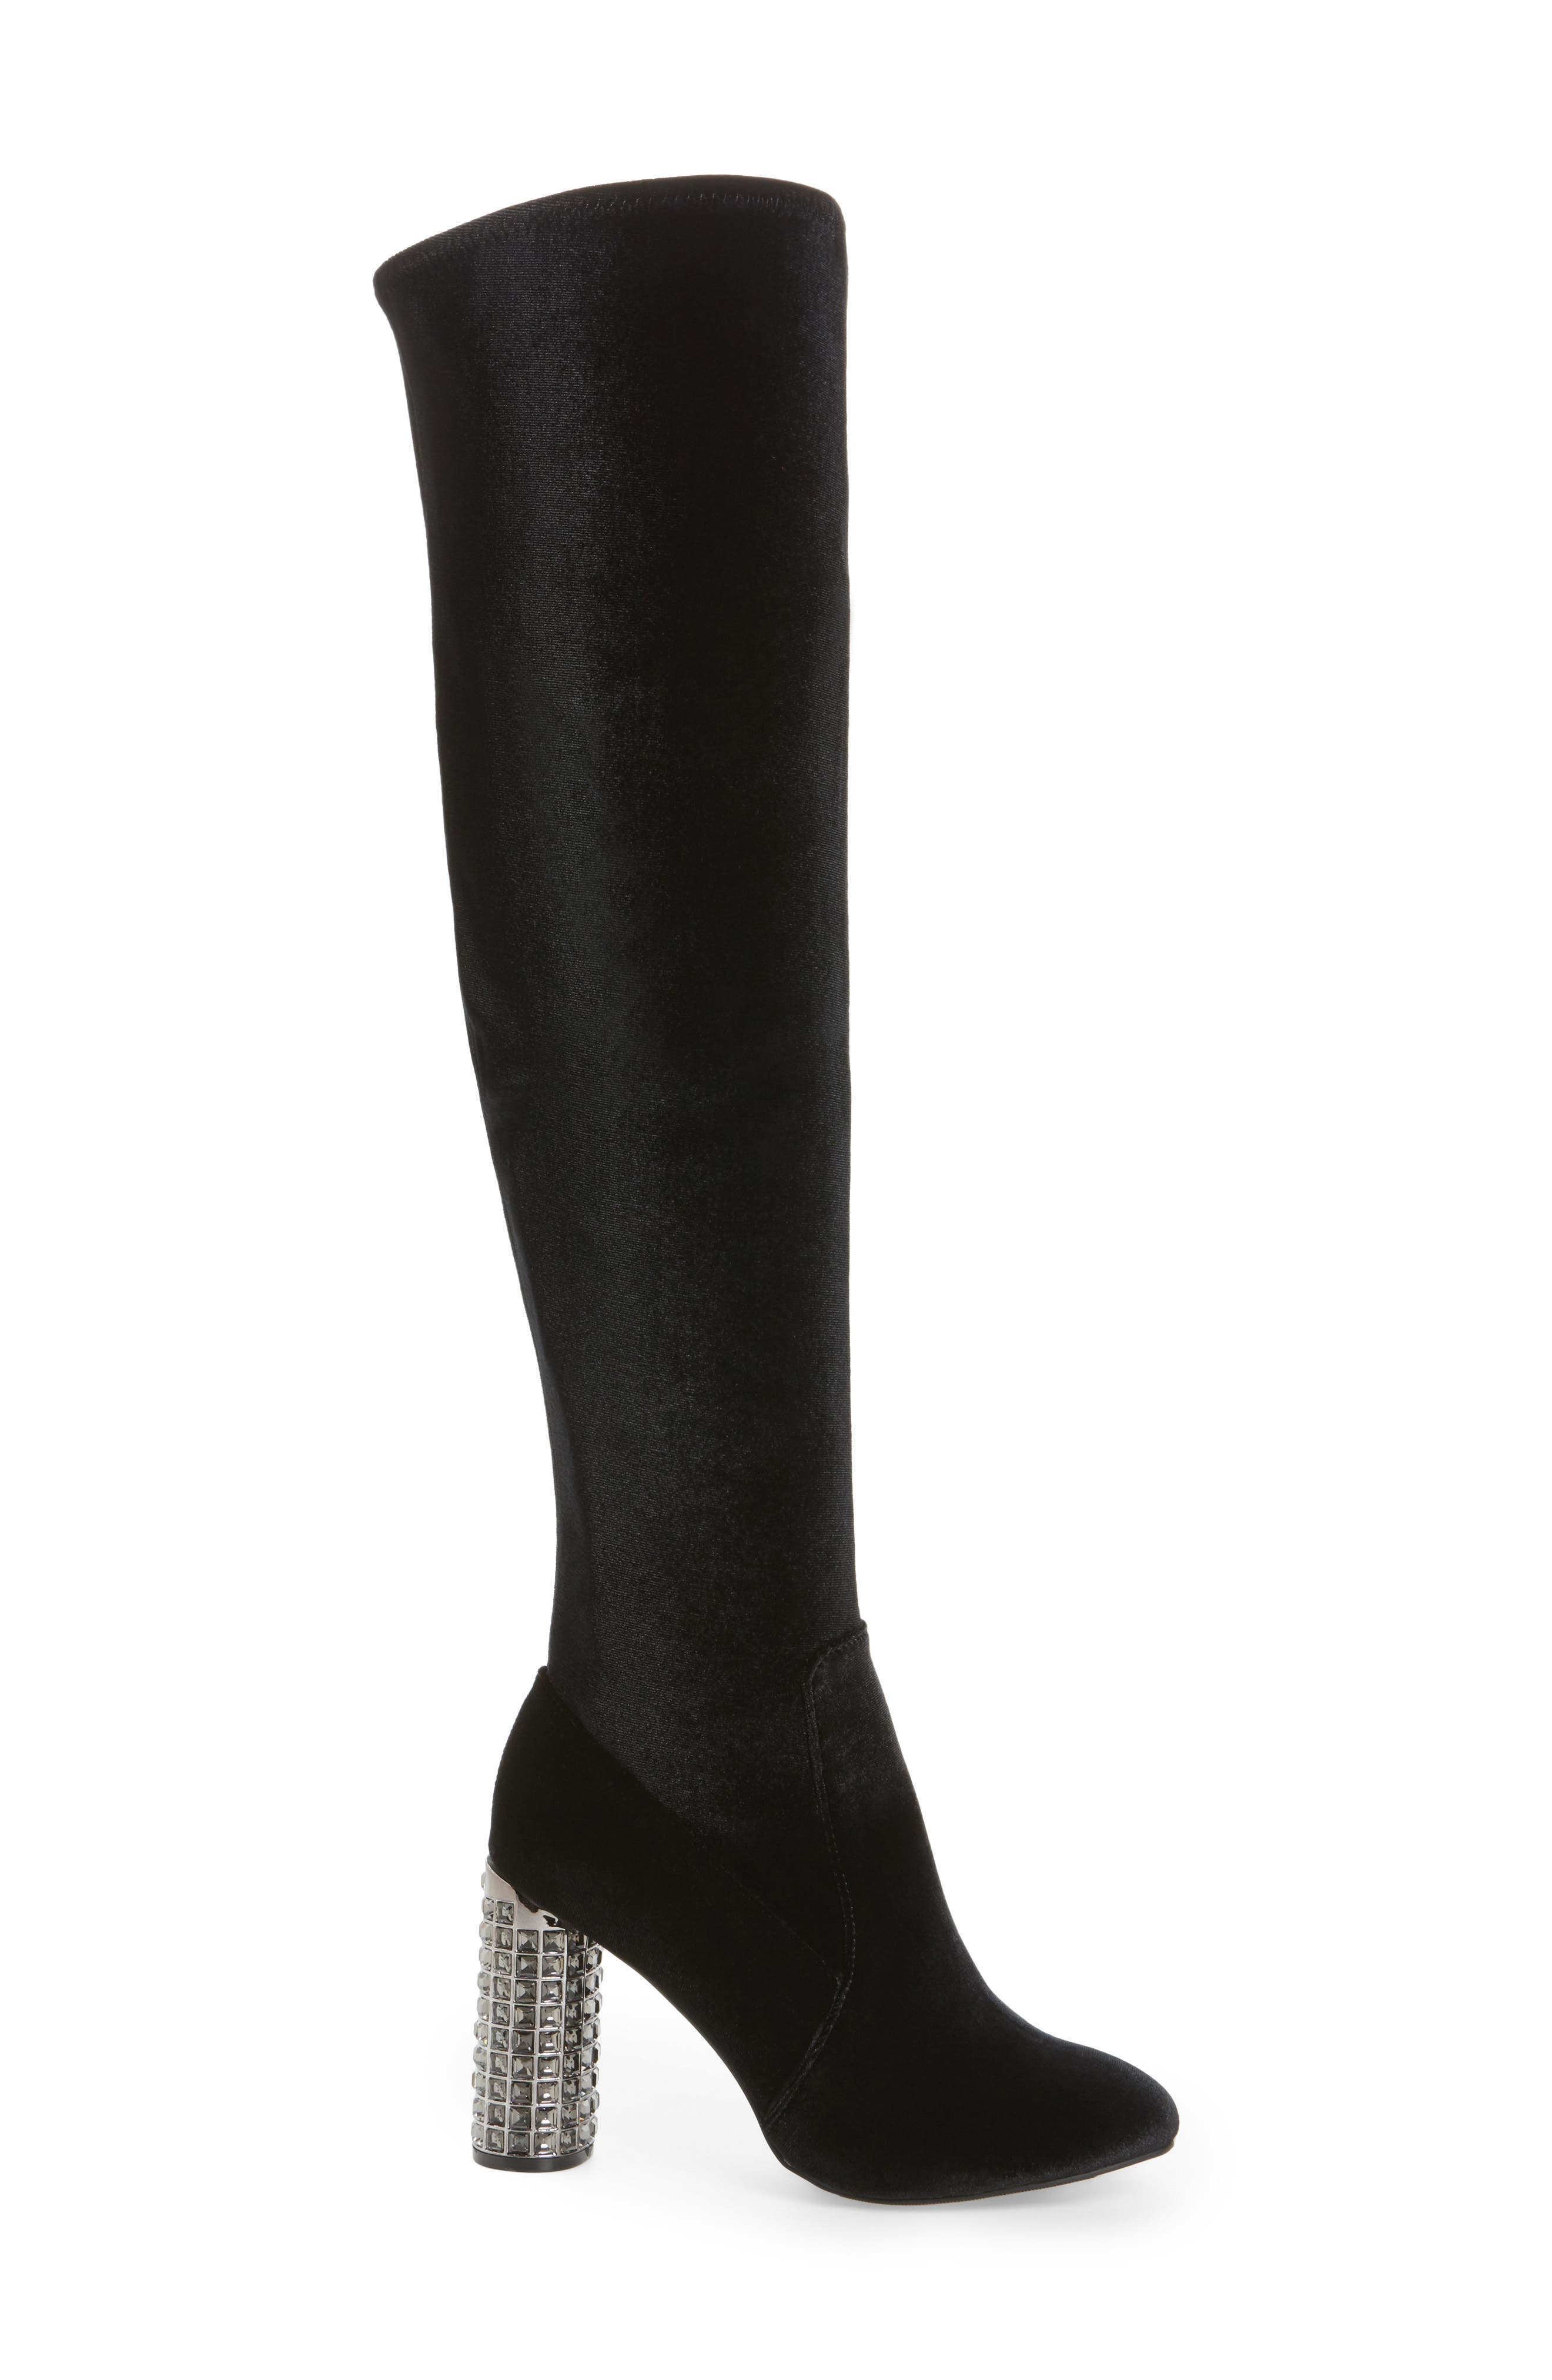 Itzela Over the Knee Boot,                             Alternate thumbnail 3, color,                             003